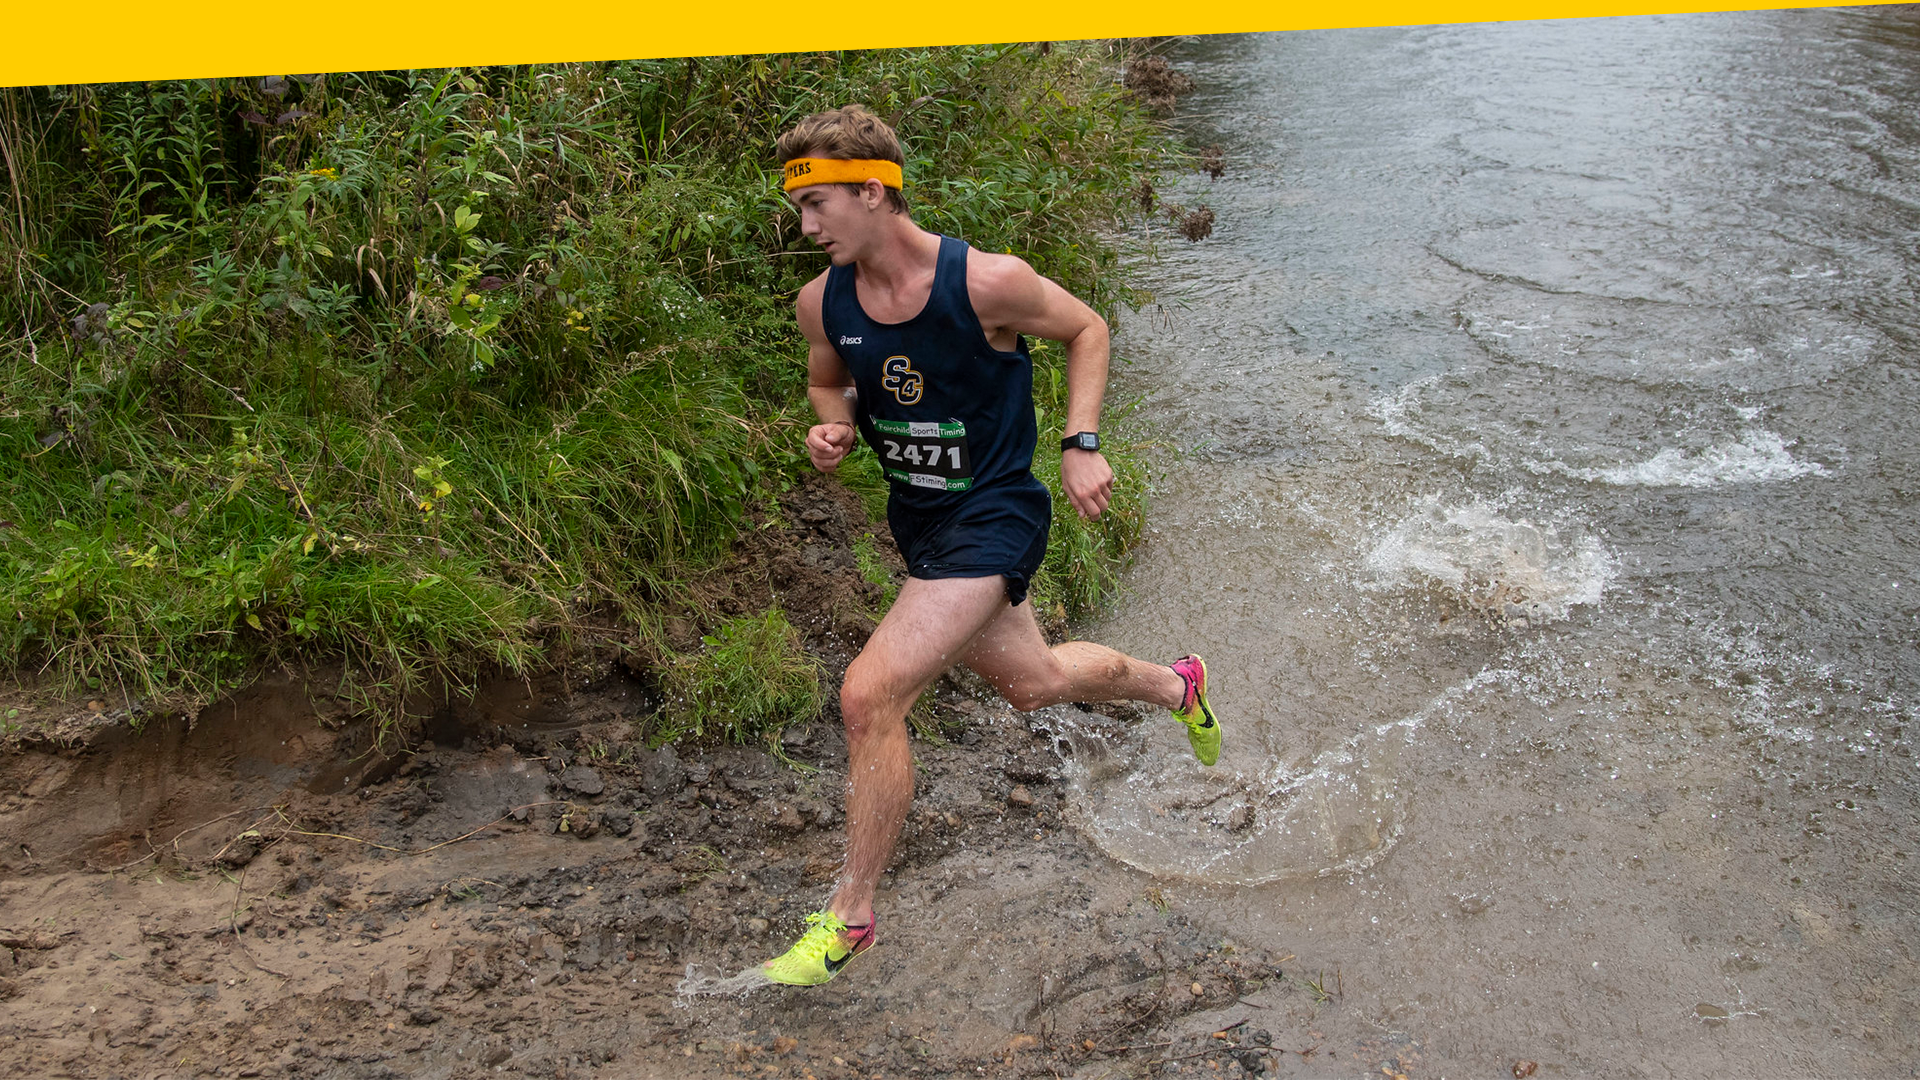 Men's cross country team member runs through water in competition